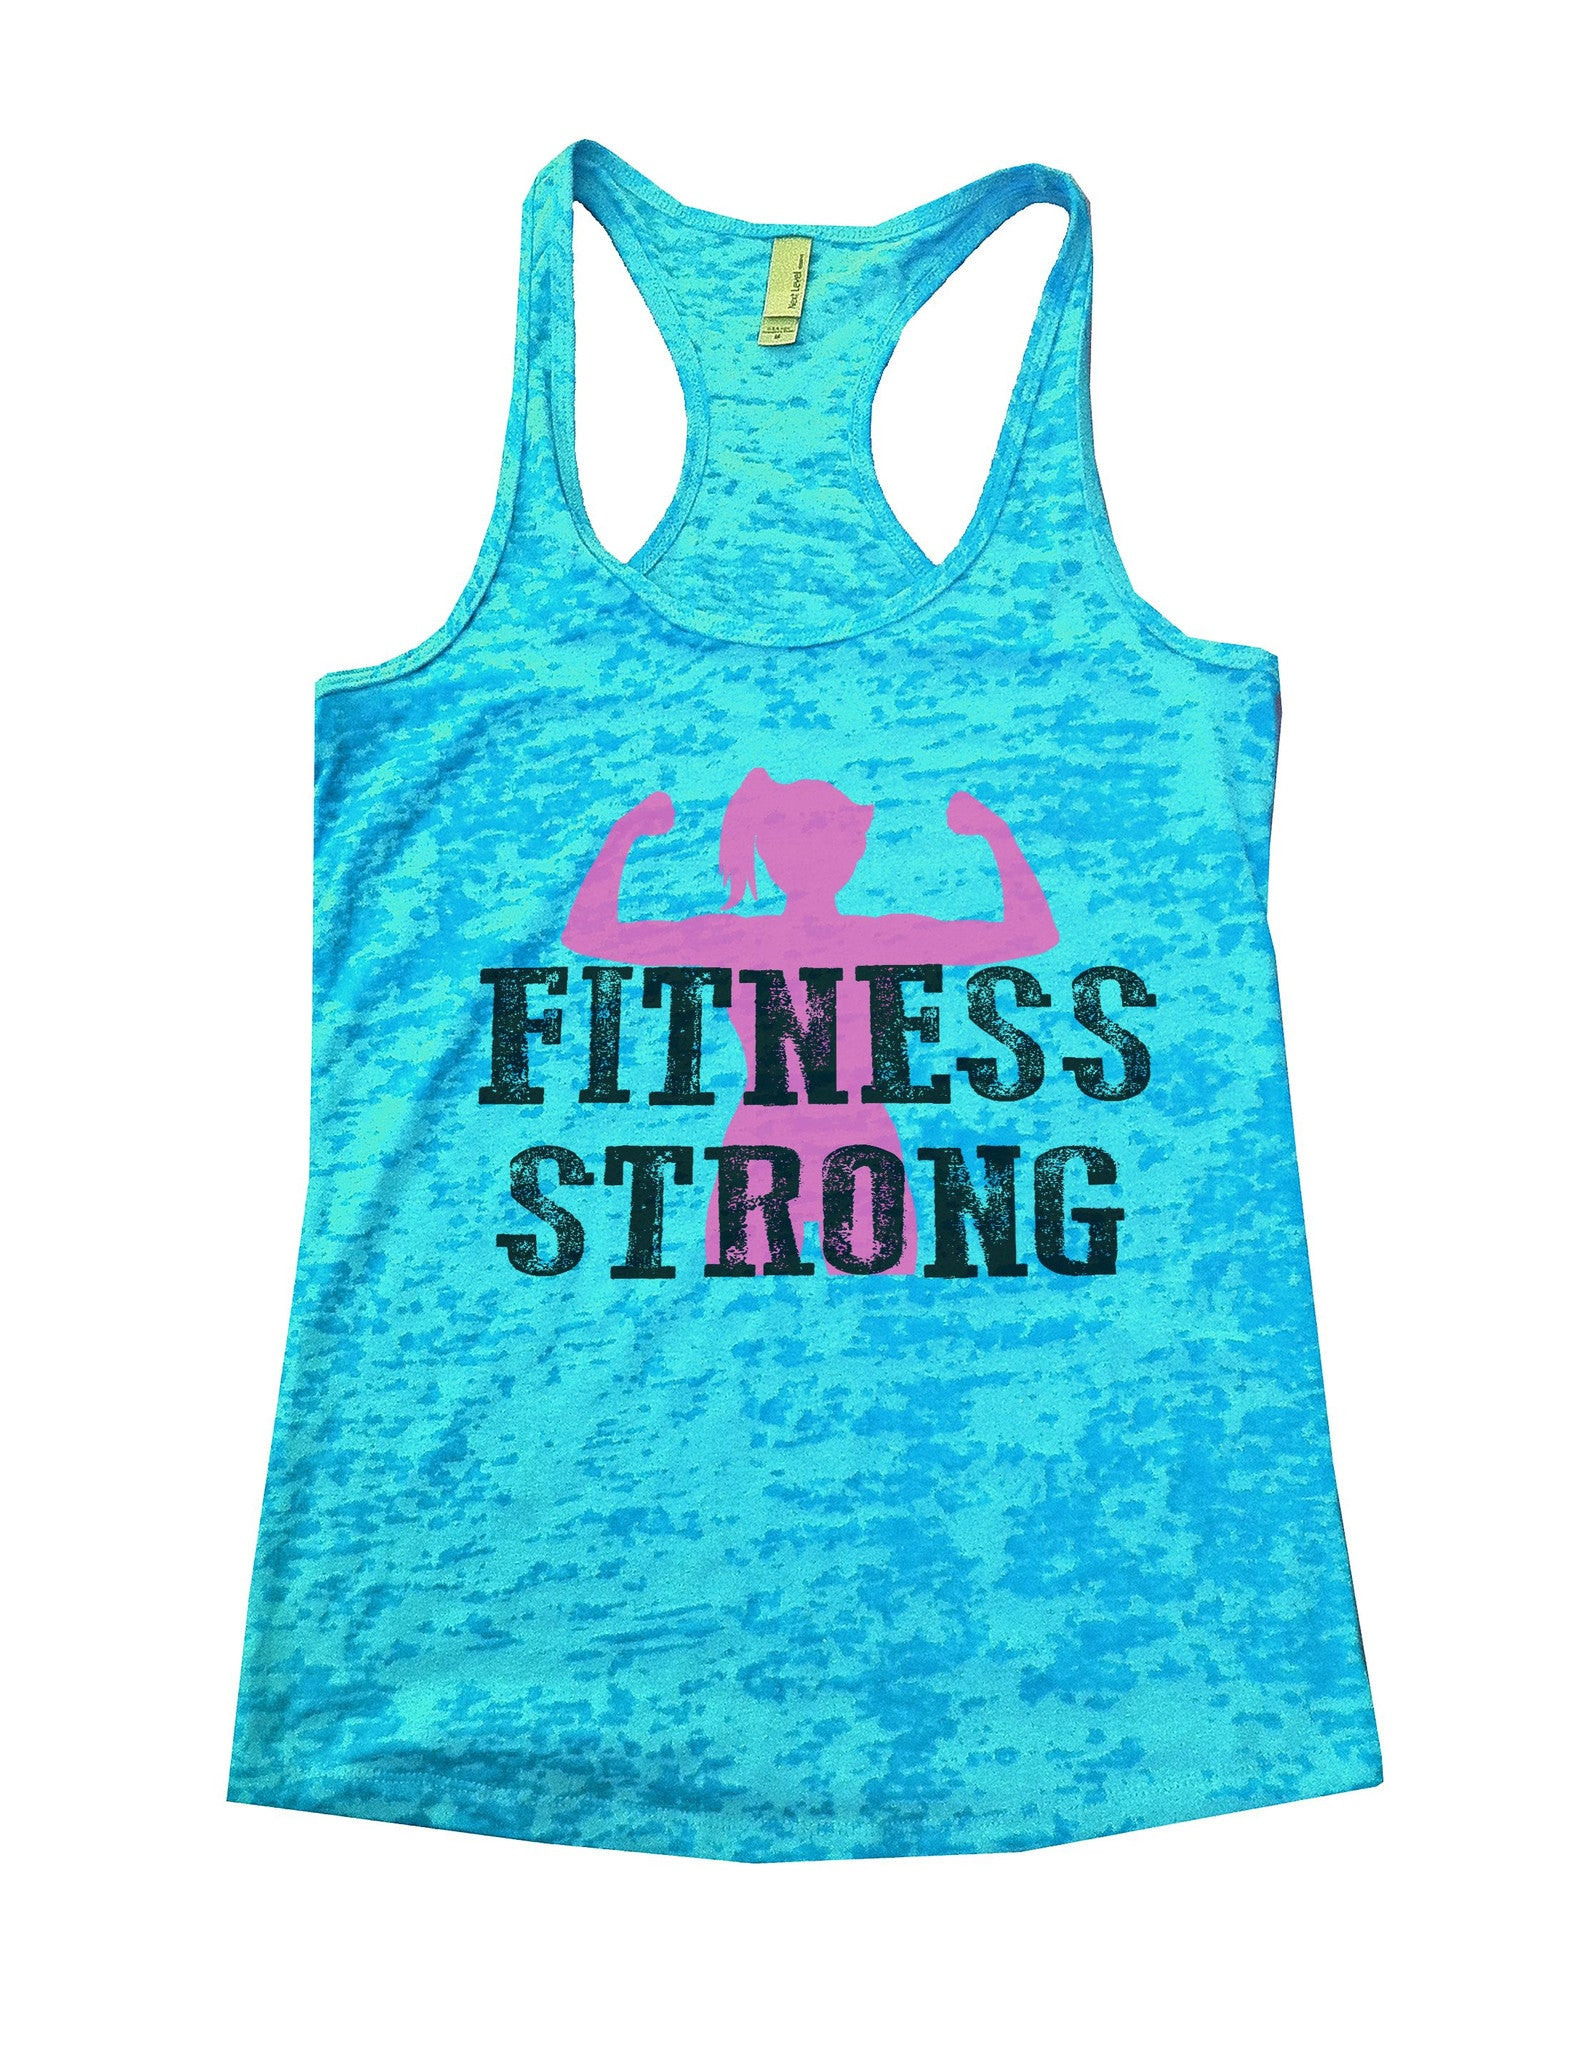 Fitness Strong Burnout Tank Top By BurnoutTankTops.com - 782 - Funny Shirts Tank Tops Burnouts and Triblends  - 4